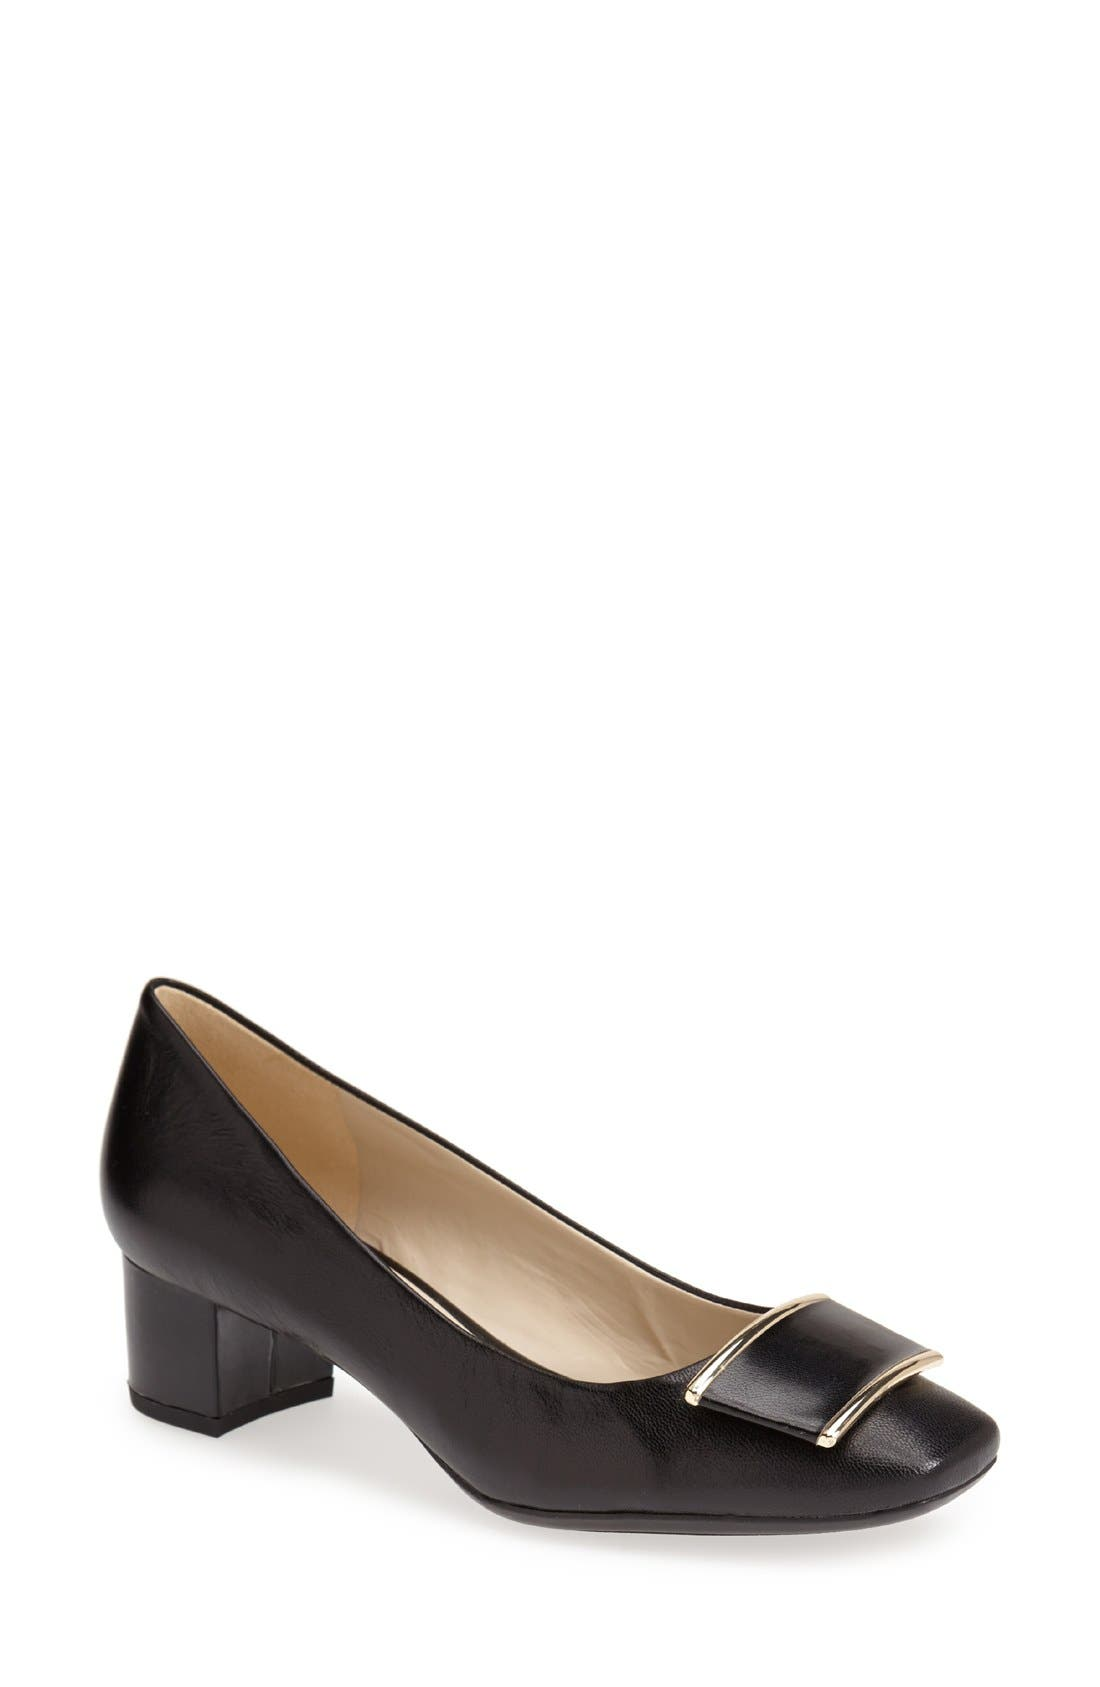 Main Image - Naturalizer 'Faulkner' Leather Pump (Women)